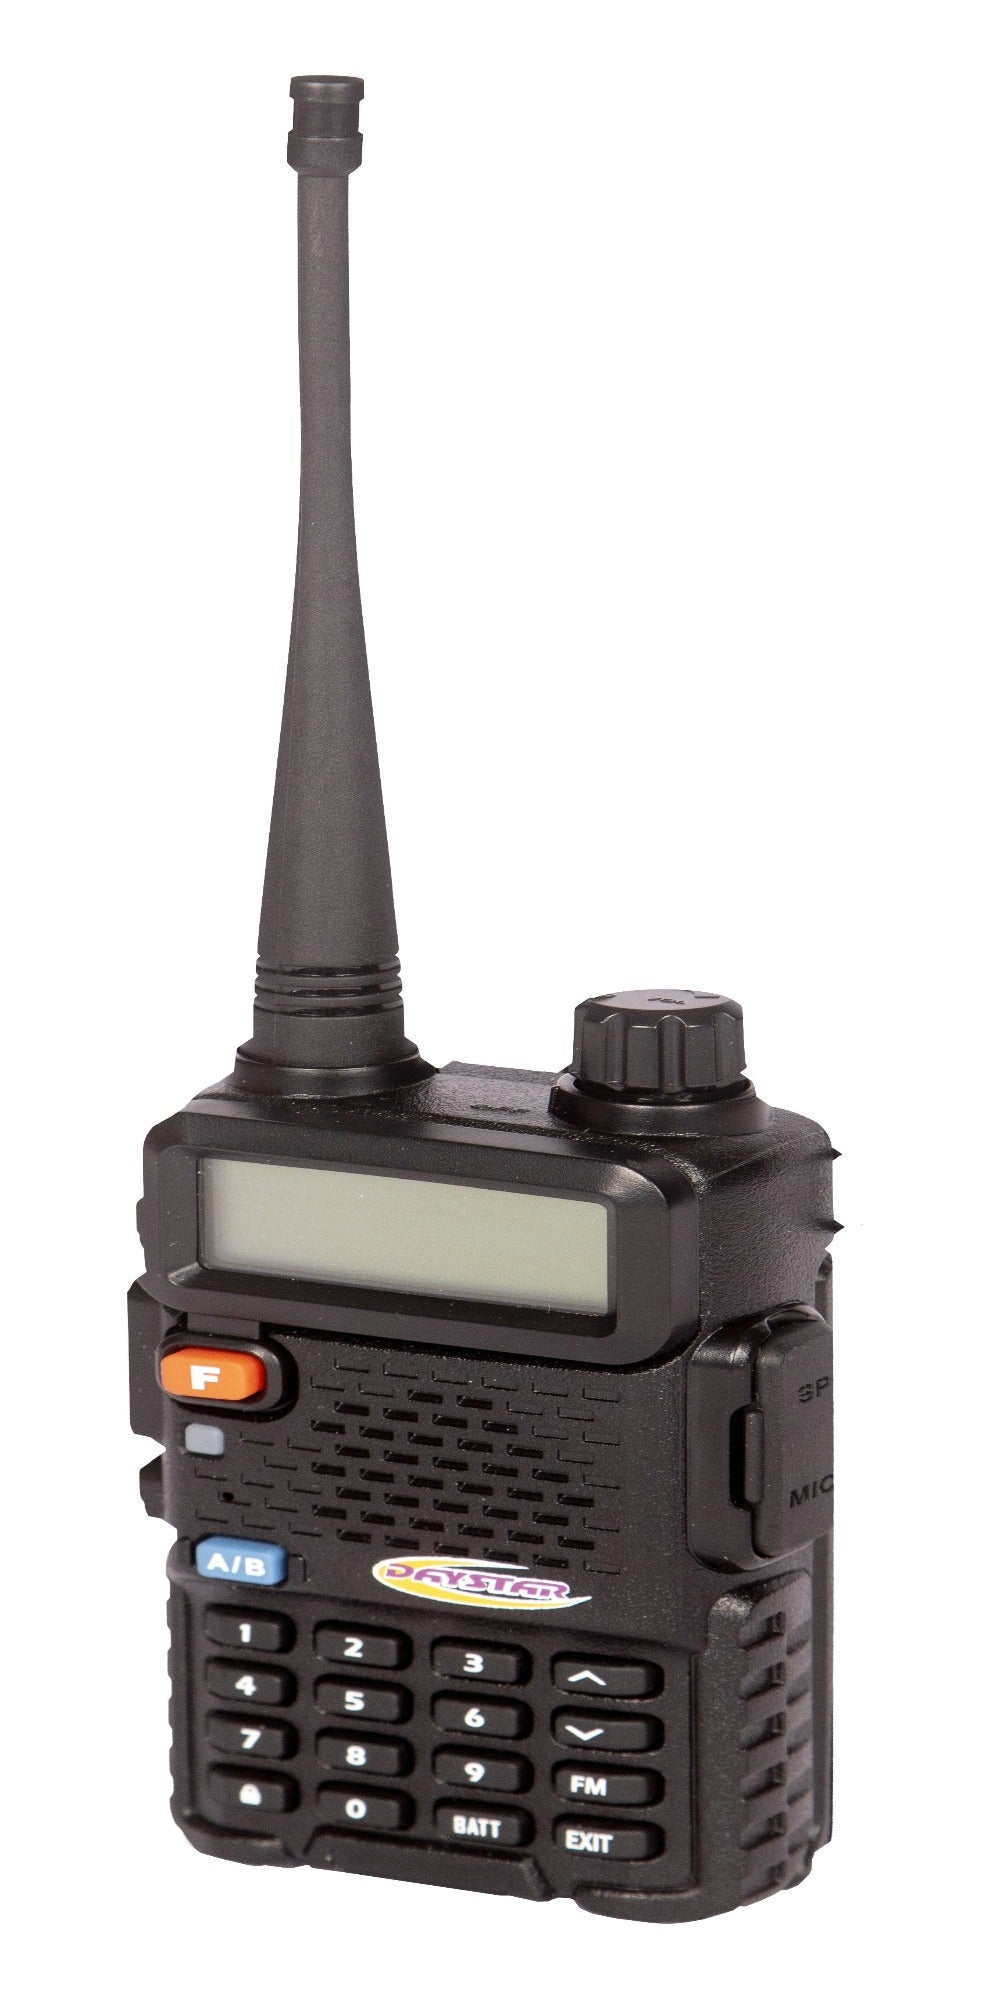 Daystar Race GMRS Hand Held Radio